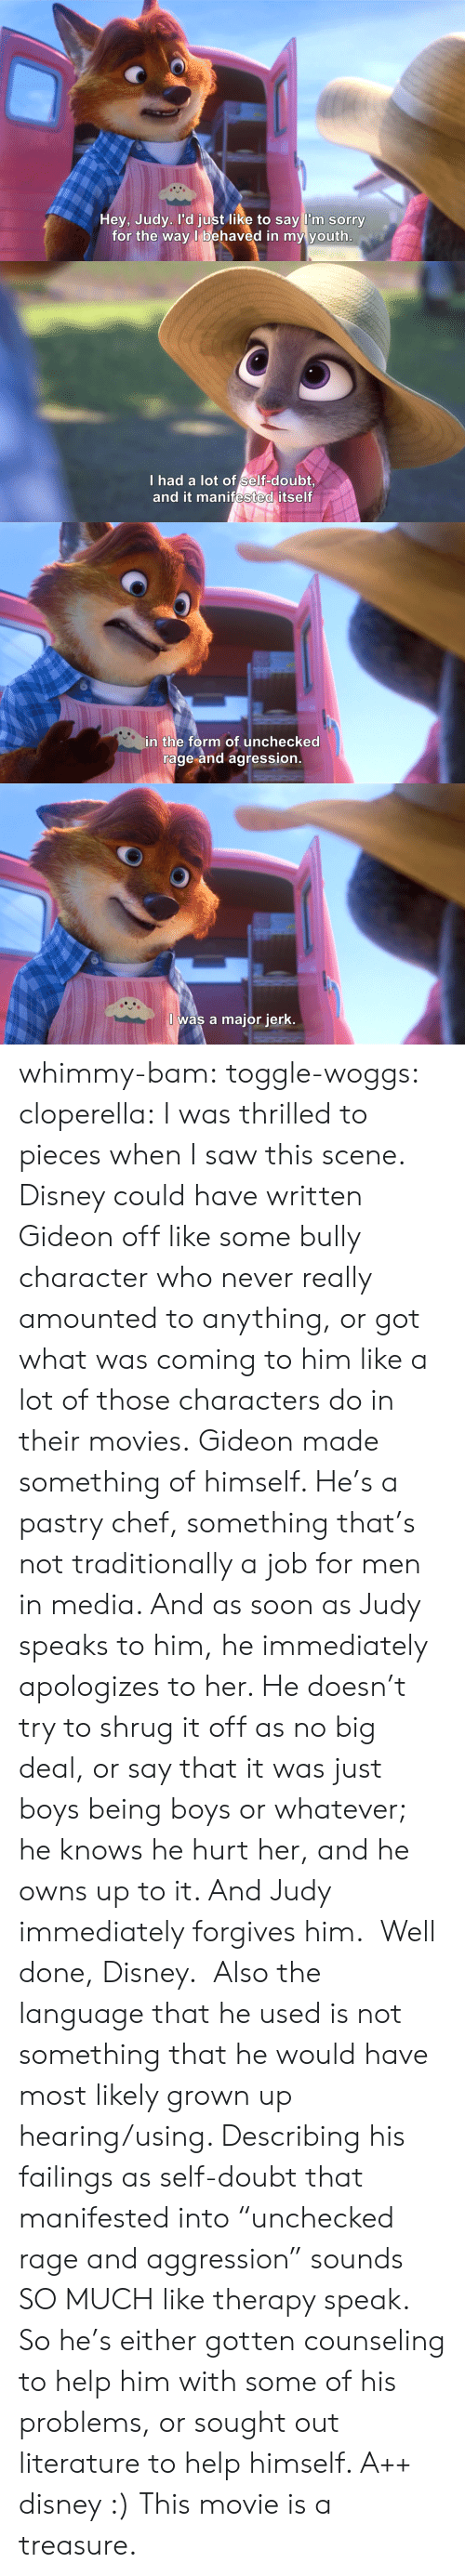 """owns: Hey, Judy. l'd just like to say l'm sorry  for the way l behaved in my youth   I had a lot of self-doubt  and it manifested itself   in the form of unchecked  rage and agression   I was a major jerk. whimmy-bam: toggle-woggs:  cloperella:  I was thrilled to pieces when I saw this scene. Disney could have written Gideon off like some bully character who never really amounted to anything, or got what was coming to him like a lot of those characters do in their movies.Gideon made something of himself. He's a pastry chef, something that's not traditionally a job for men in media. And as soon as Judy speaks to him, he immediately apologizes to her. He doesn't try to shrug it off as no big deal, or say that it was just boys being boys or whatever; he knows he hurt her, and he owns up to it. And Judy immediately forgives him. Well done, Disney.  Also the language that he used is not something that he would have most likely grown up hearing/using. Describing his failings as self-doubt that manifested into""""unchecked rage and aggression"""" sounds SO MUCH like therapy speak. So he's either gotten counseling to help him with some of his problems, or sought out literature to help himself. A++ disney :)  This movie is a treasure."""